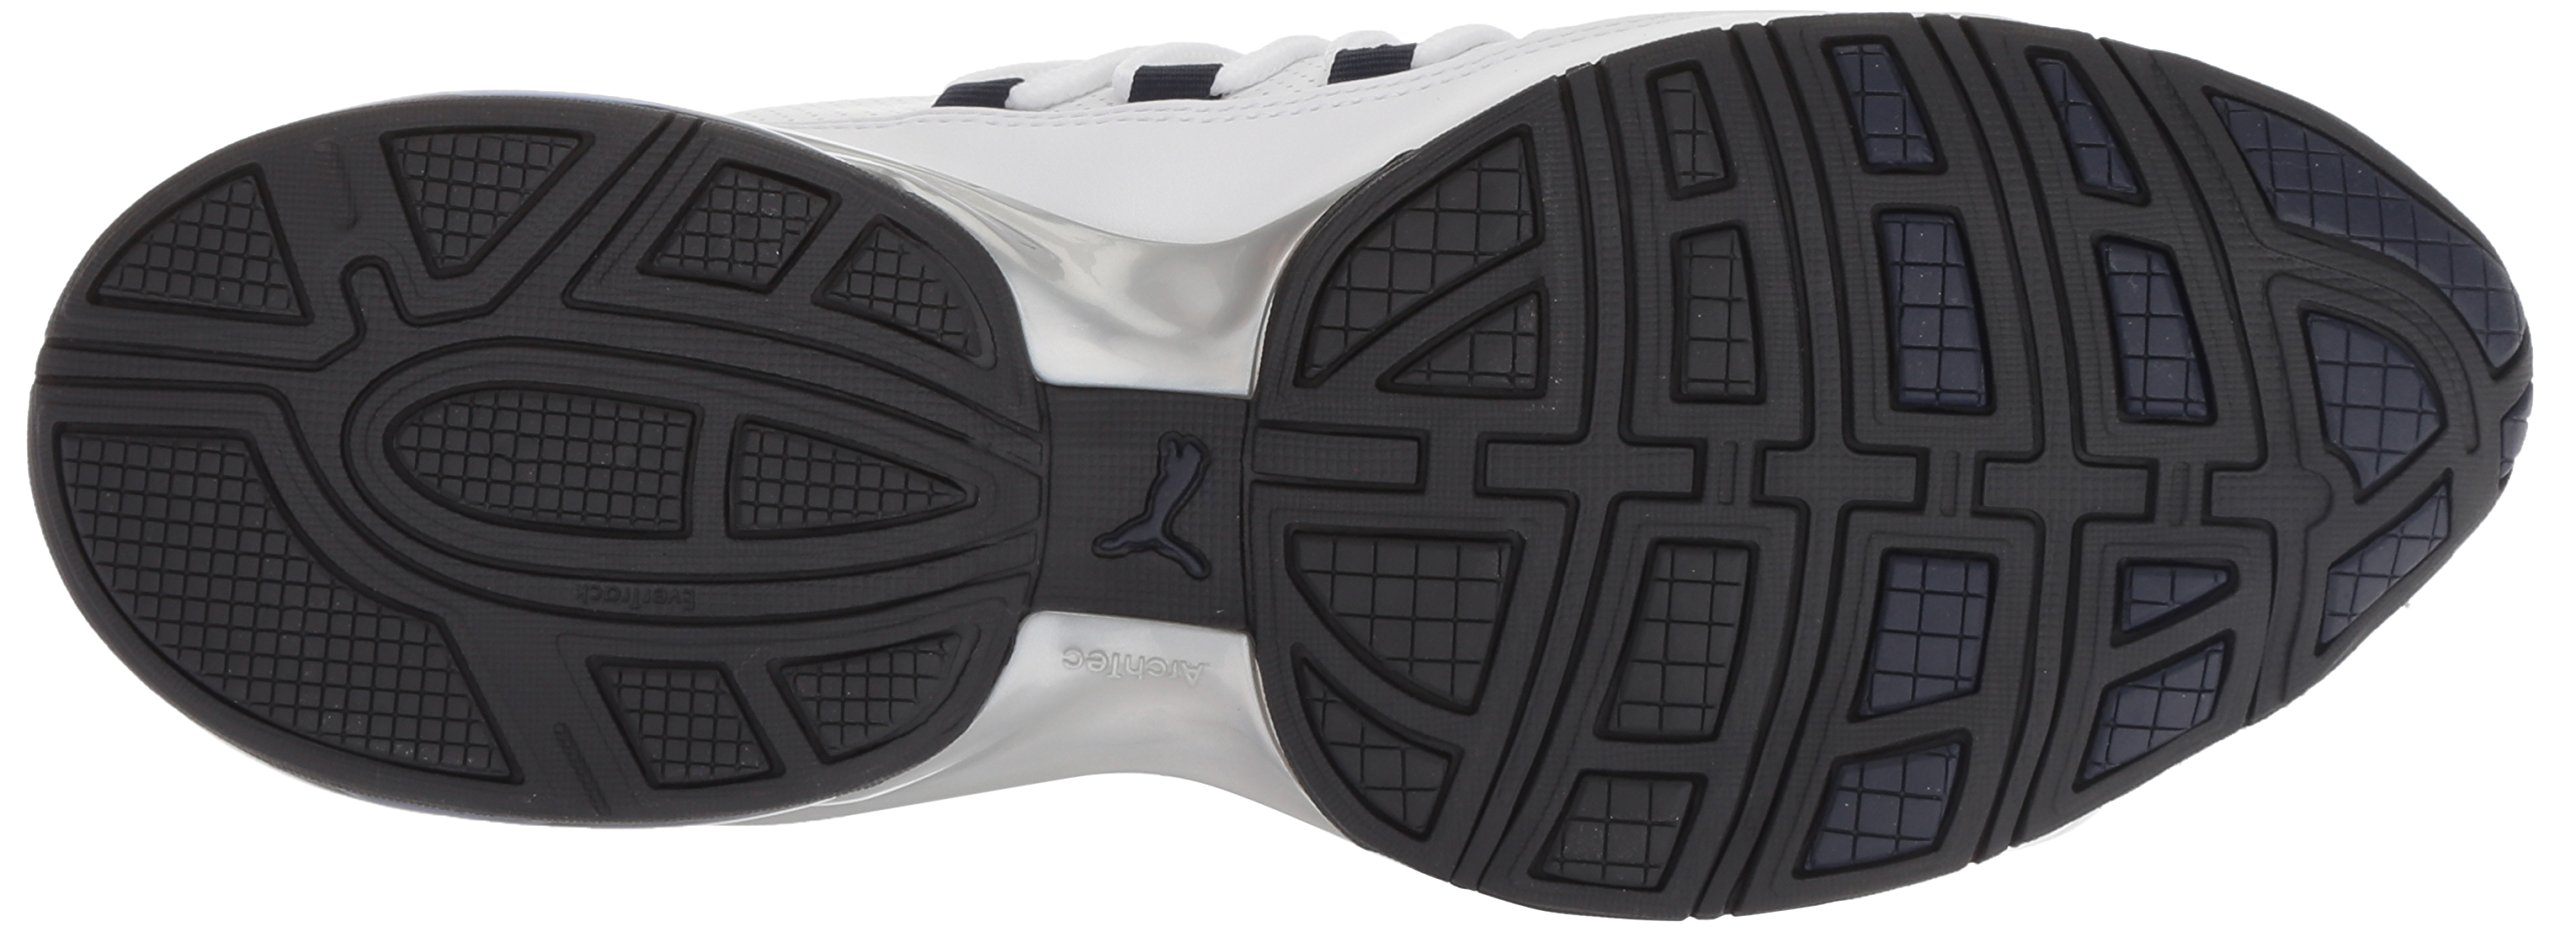 PUMA Men's Cell Regulate SL Sneaker, White Black-Peacoat Silver, 7 M US by PUMA (Image #3)